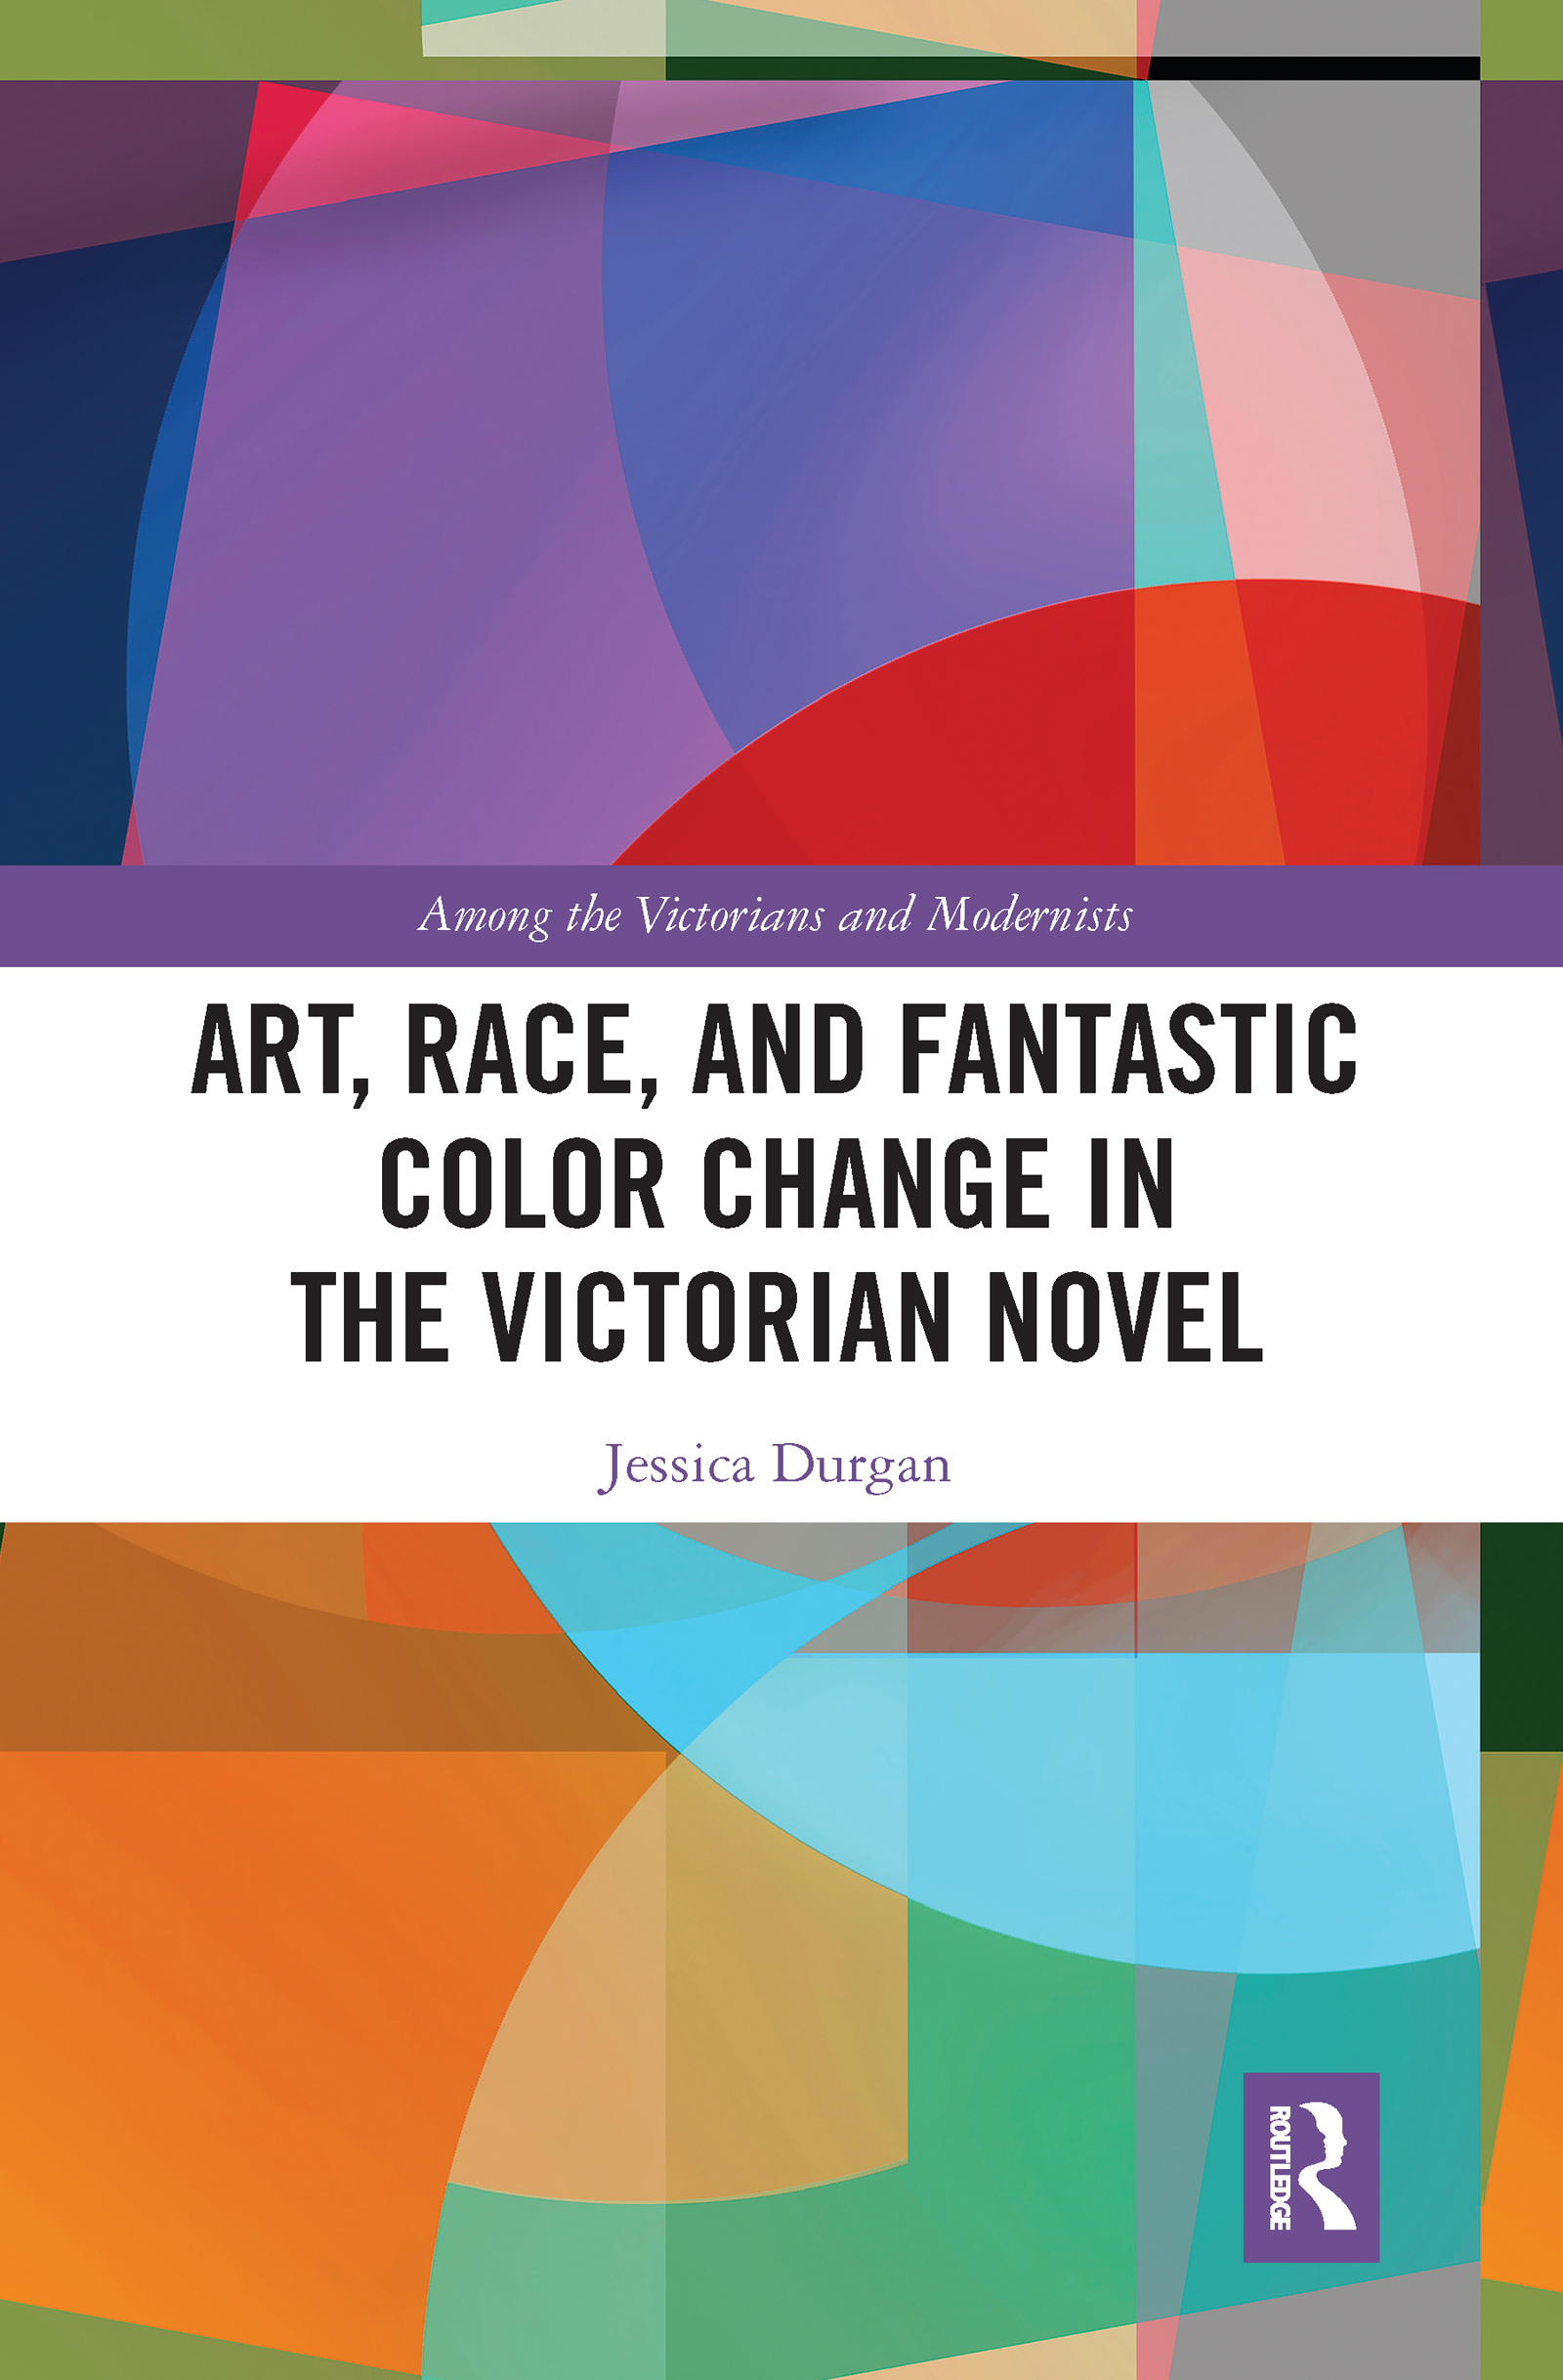 Art, Race, and Fantastic Color Change in the Victorian Novel